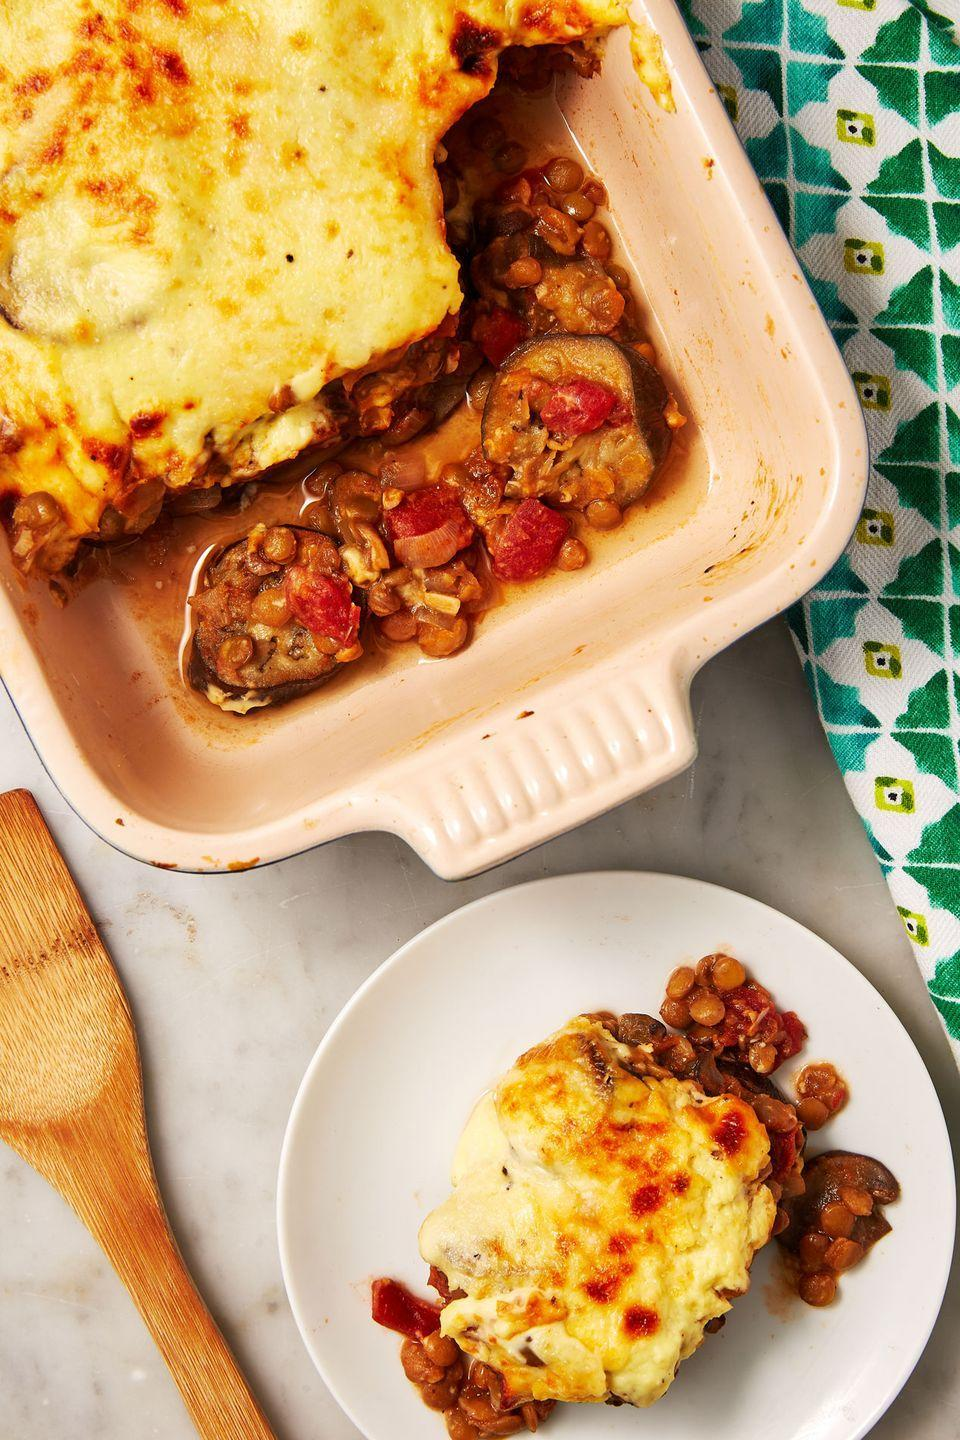 "<p>In a genius move, we swap out the ground beef for lentils in this vegetarian update on the classic.</p><p>Get the recipe from <a href=""https://www.delish.com/cooking/recipe-ideas/a30876085/vegetarian-moussaka-recipe/"" rel=""nofollow noopener"" target=""_blank"" data-ylk=""slk:Delish."" class=""link rapid-noclick-resp"">Delish.</a></p>"